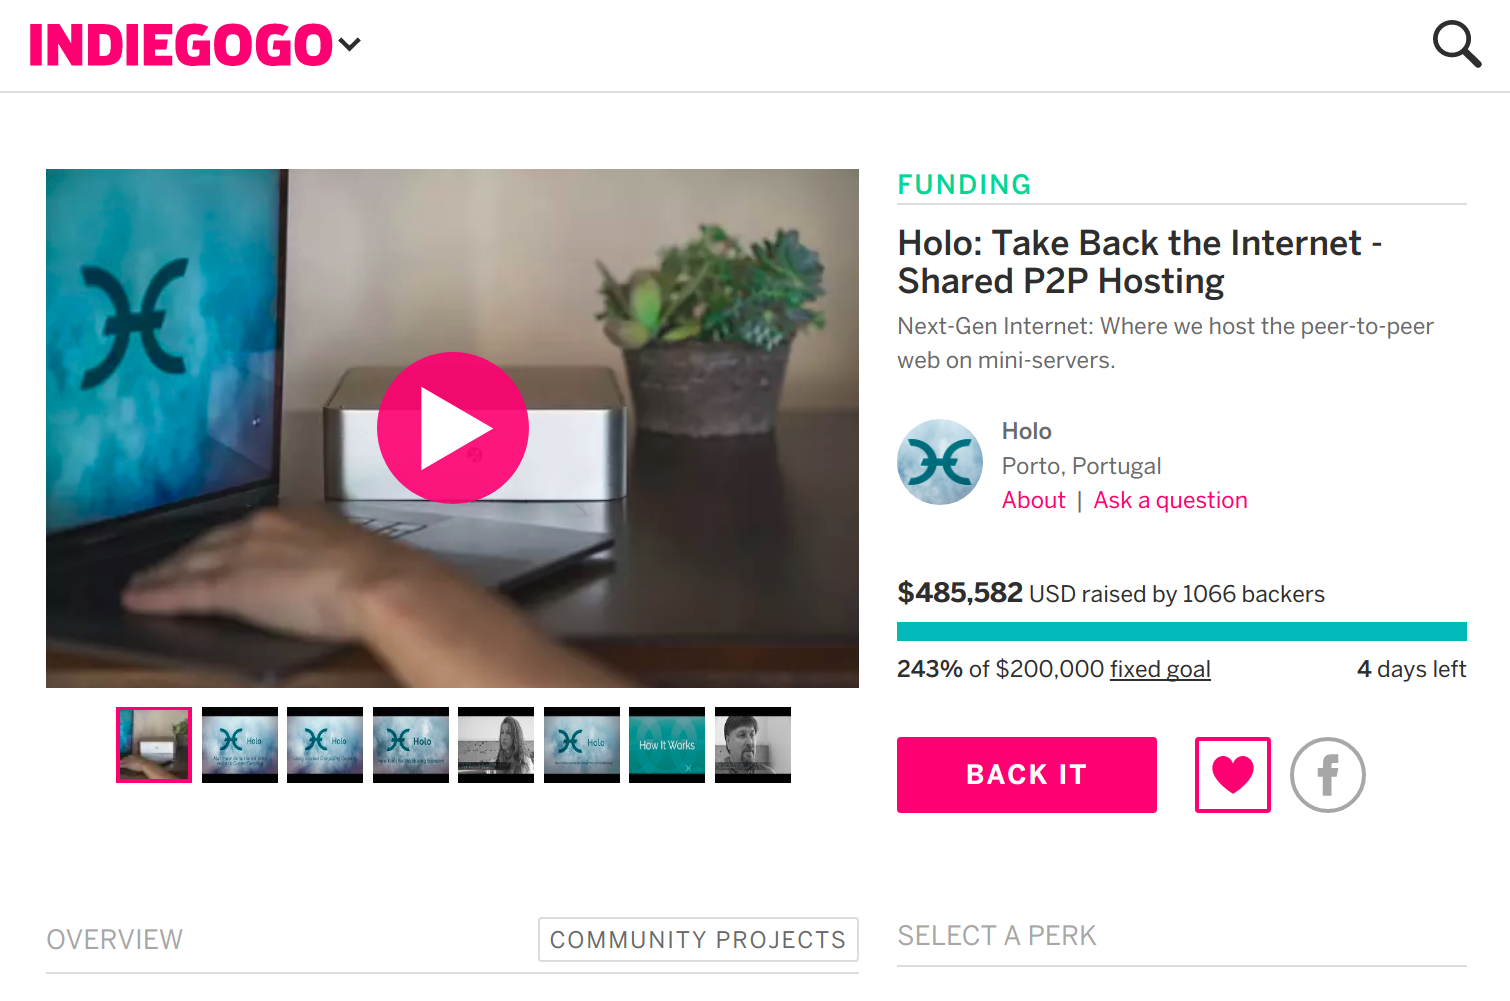 screenshot of the Holo crowdfund page on Indiegogo